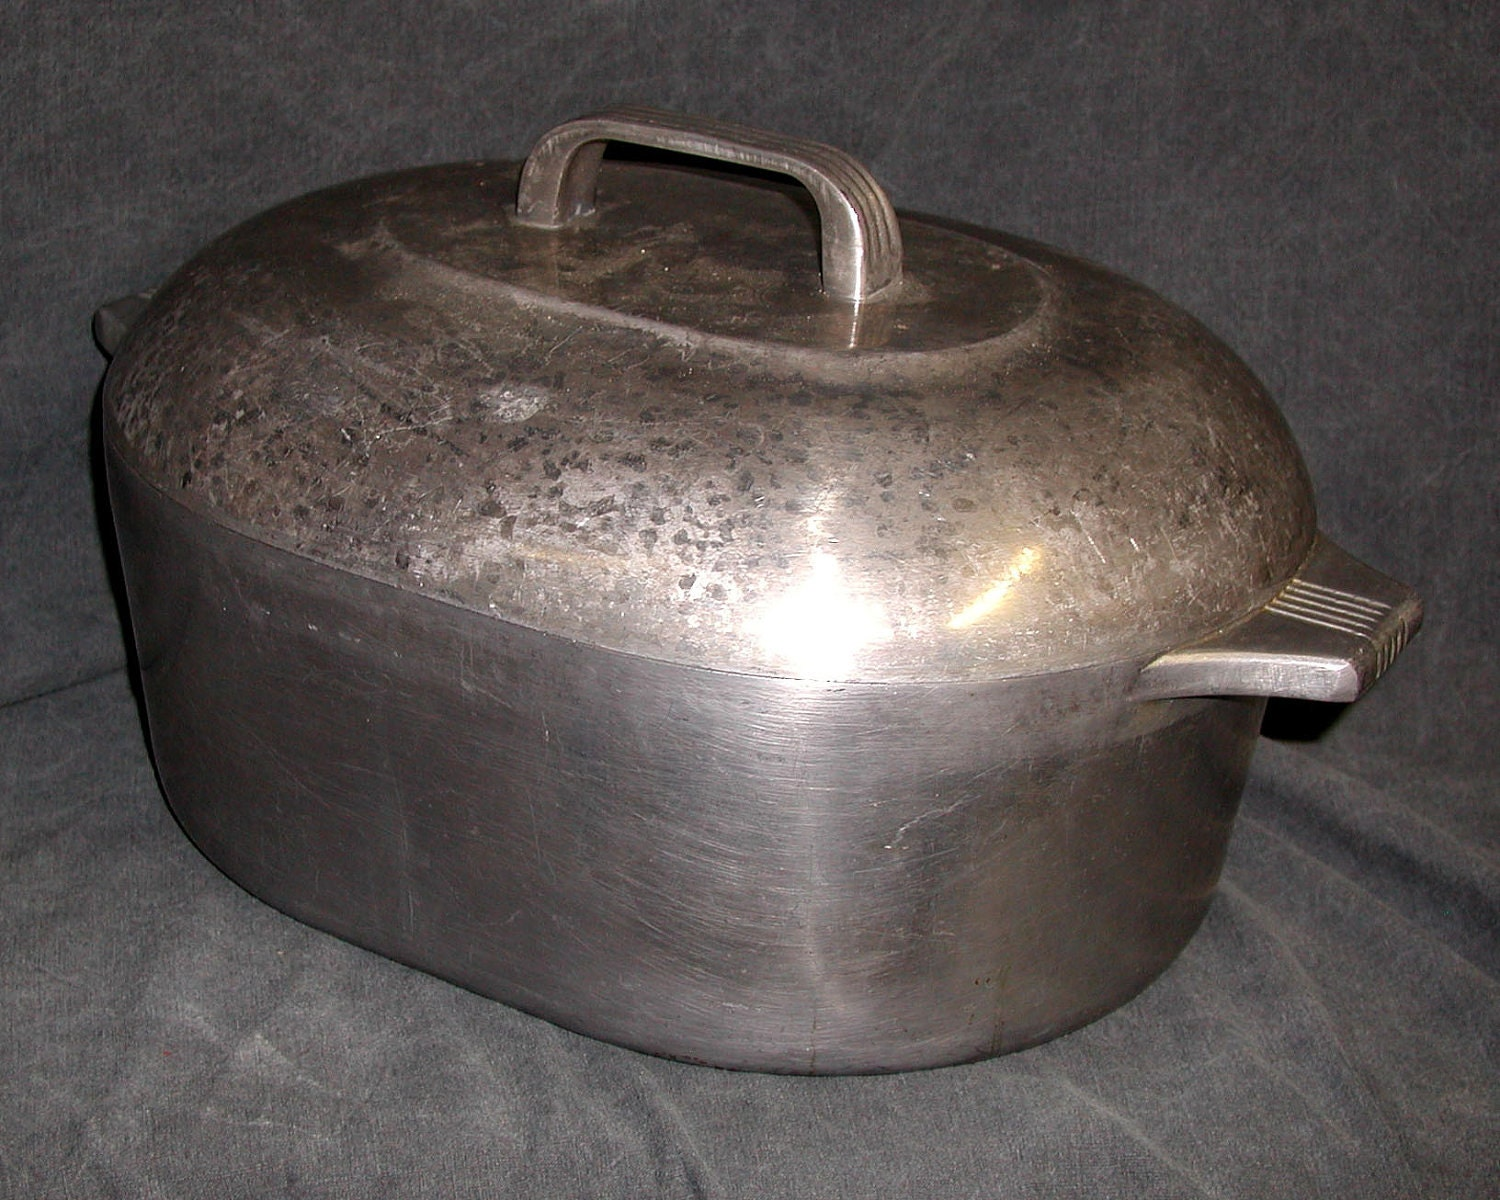 Magnalite Roaster Aluminum 8 Quart Dutch Oven Cooking Pot